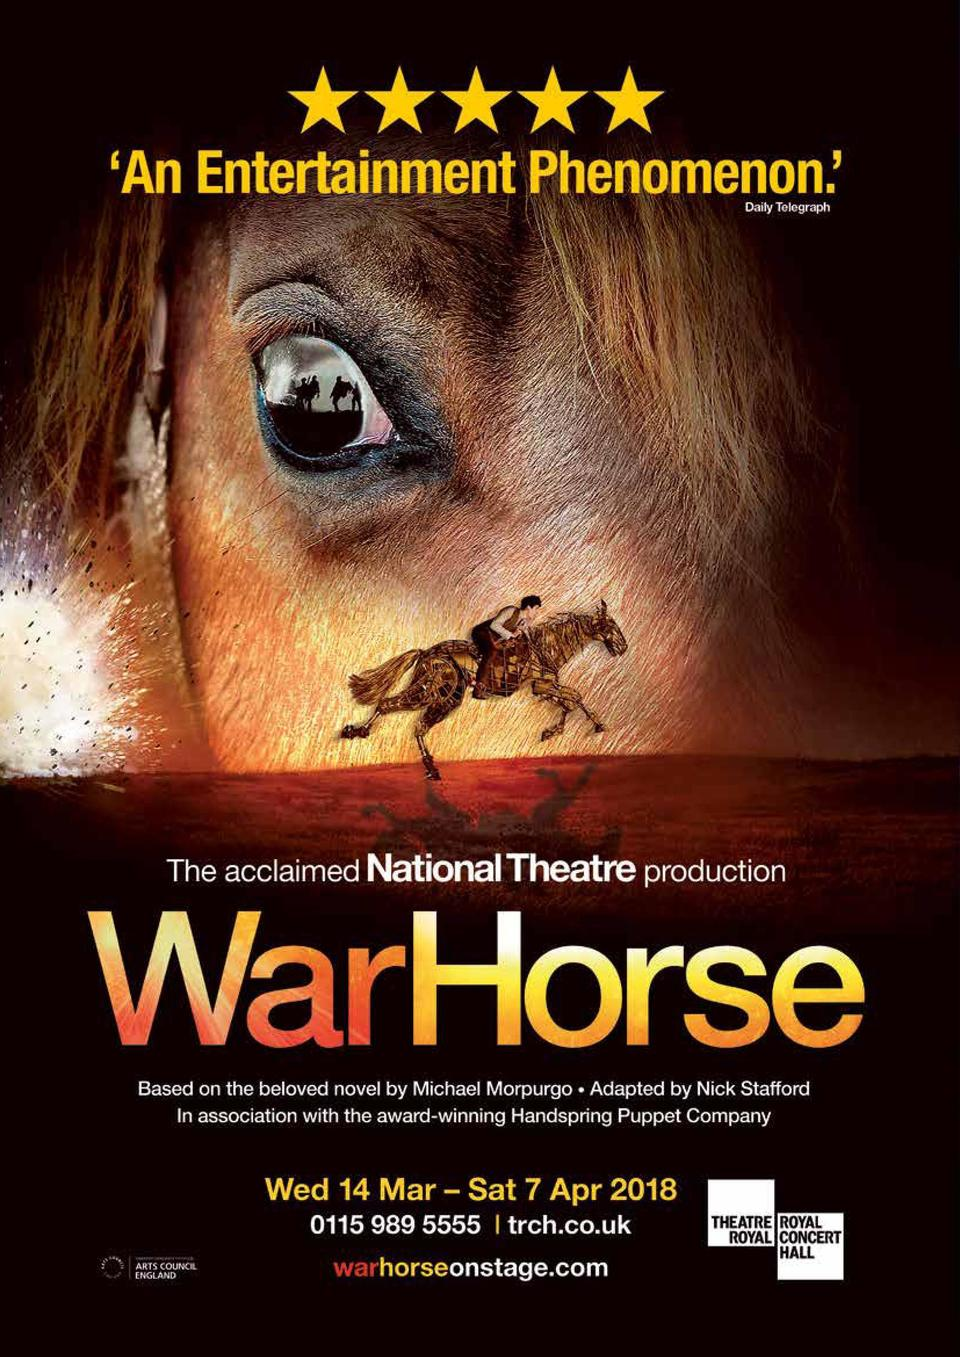 21  The National Theatre   s acclaimed production of War Horse, based on the novel by Michael Morpurgo, appears at the Roy...